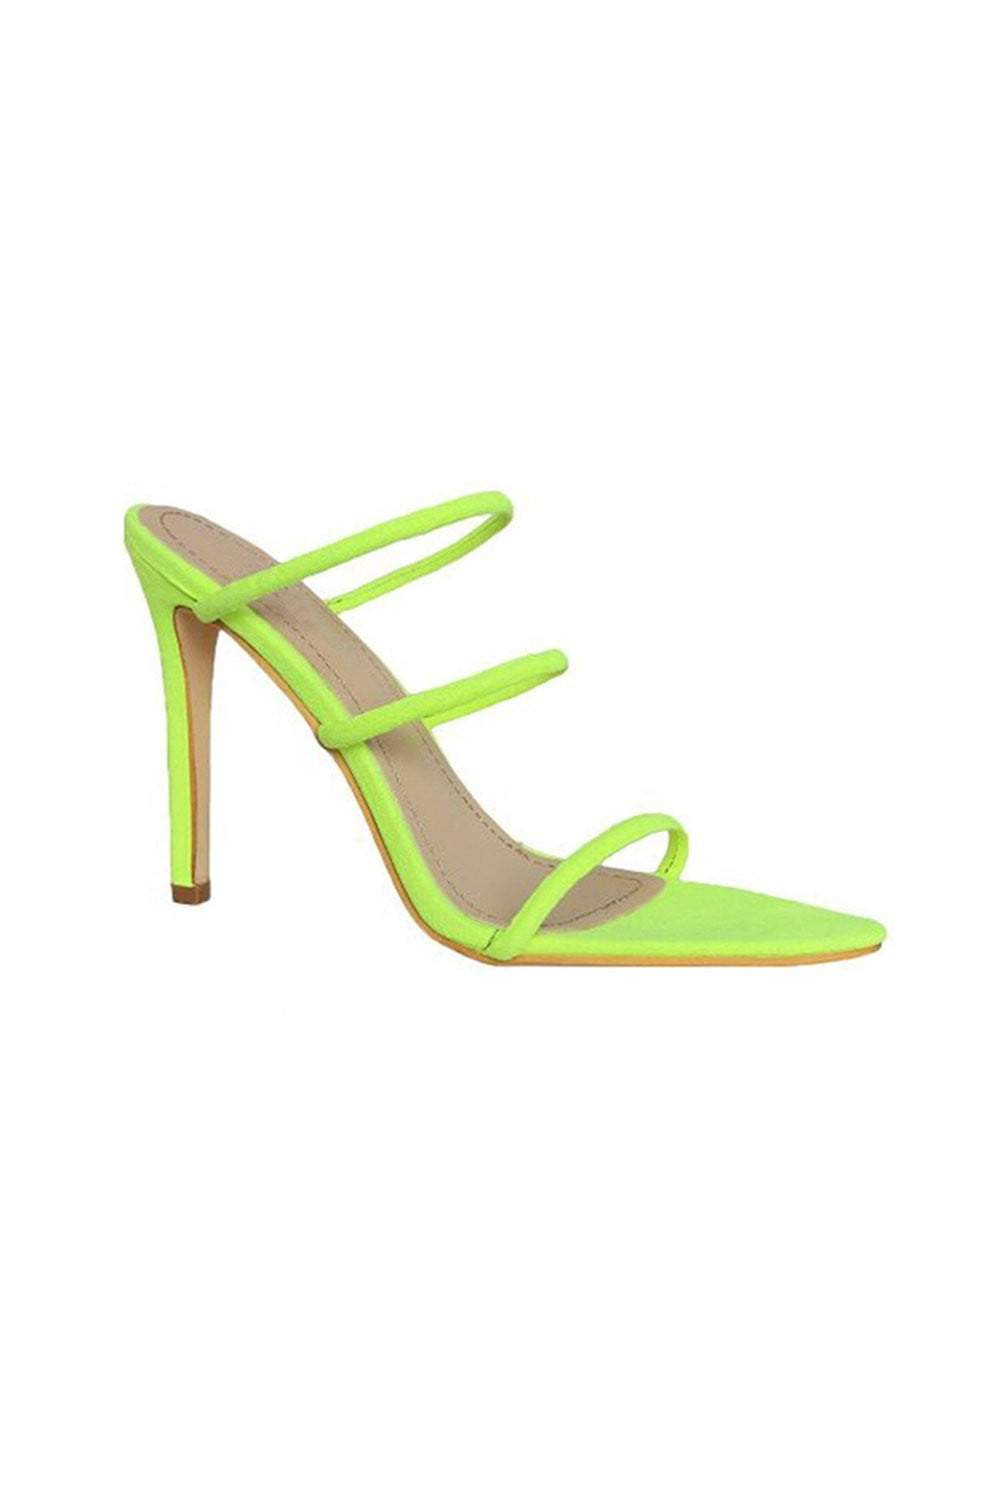 Neon Yellow Strappy High Heeled Mules (2335400722491)